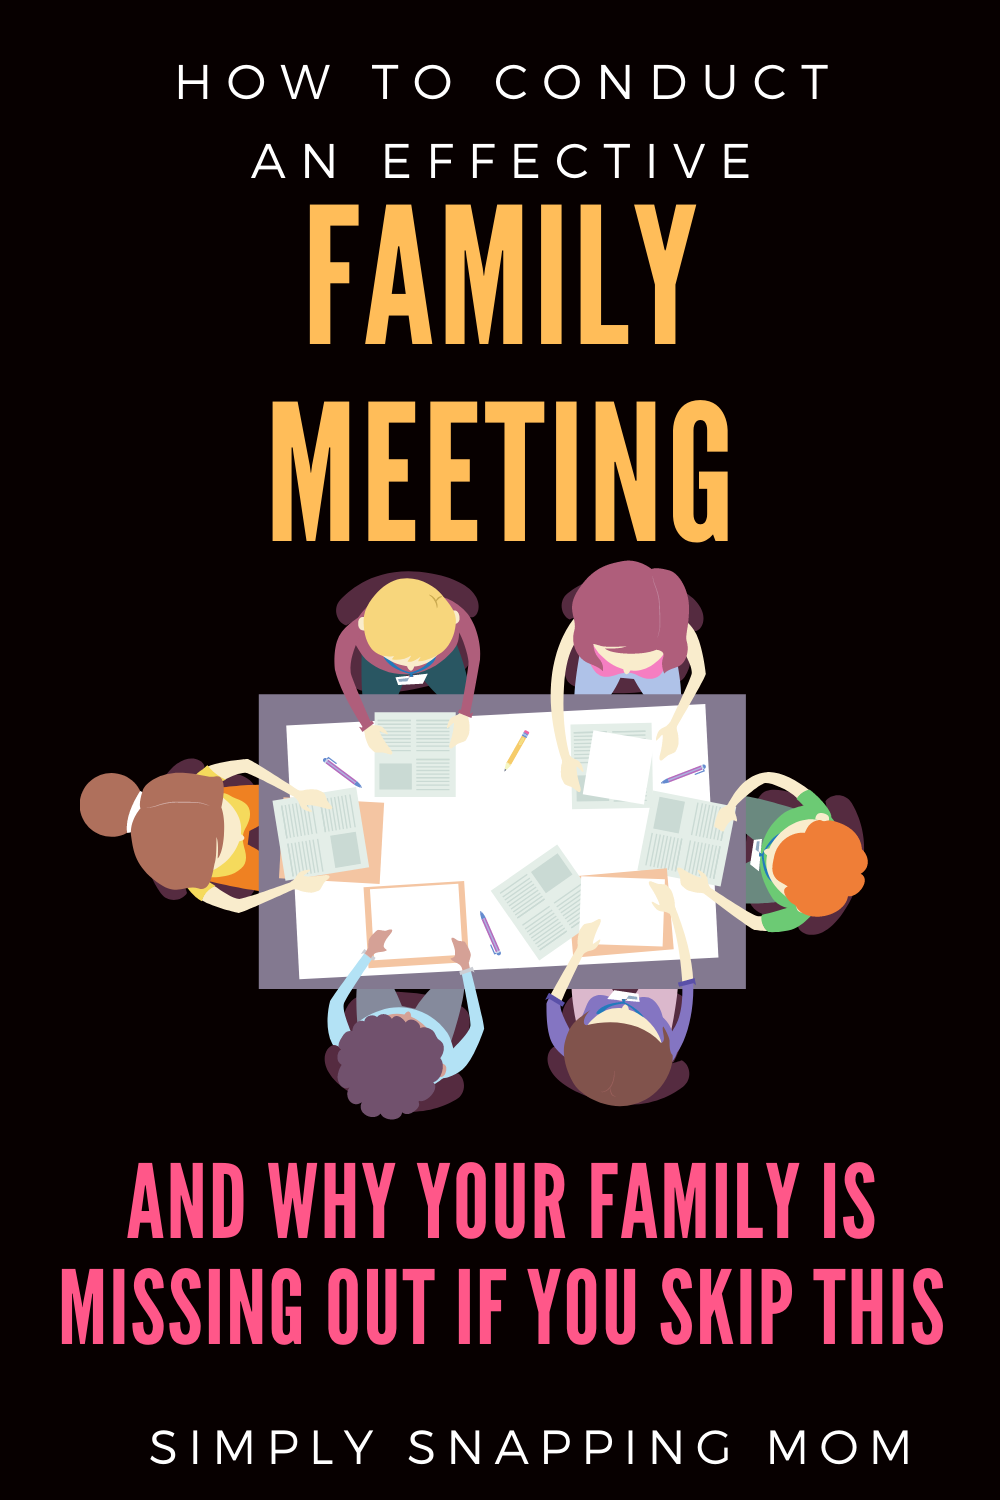 Family Meeting Ideas and Agenda